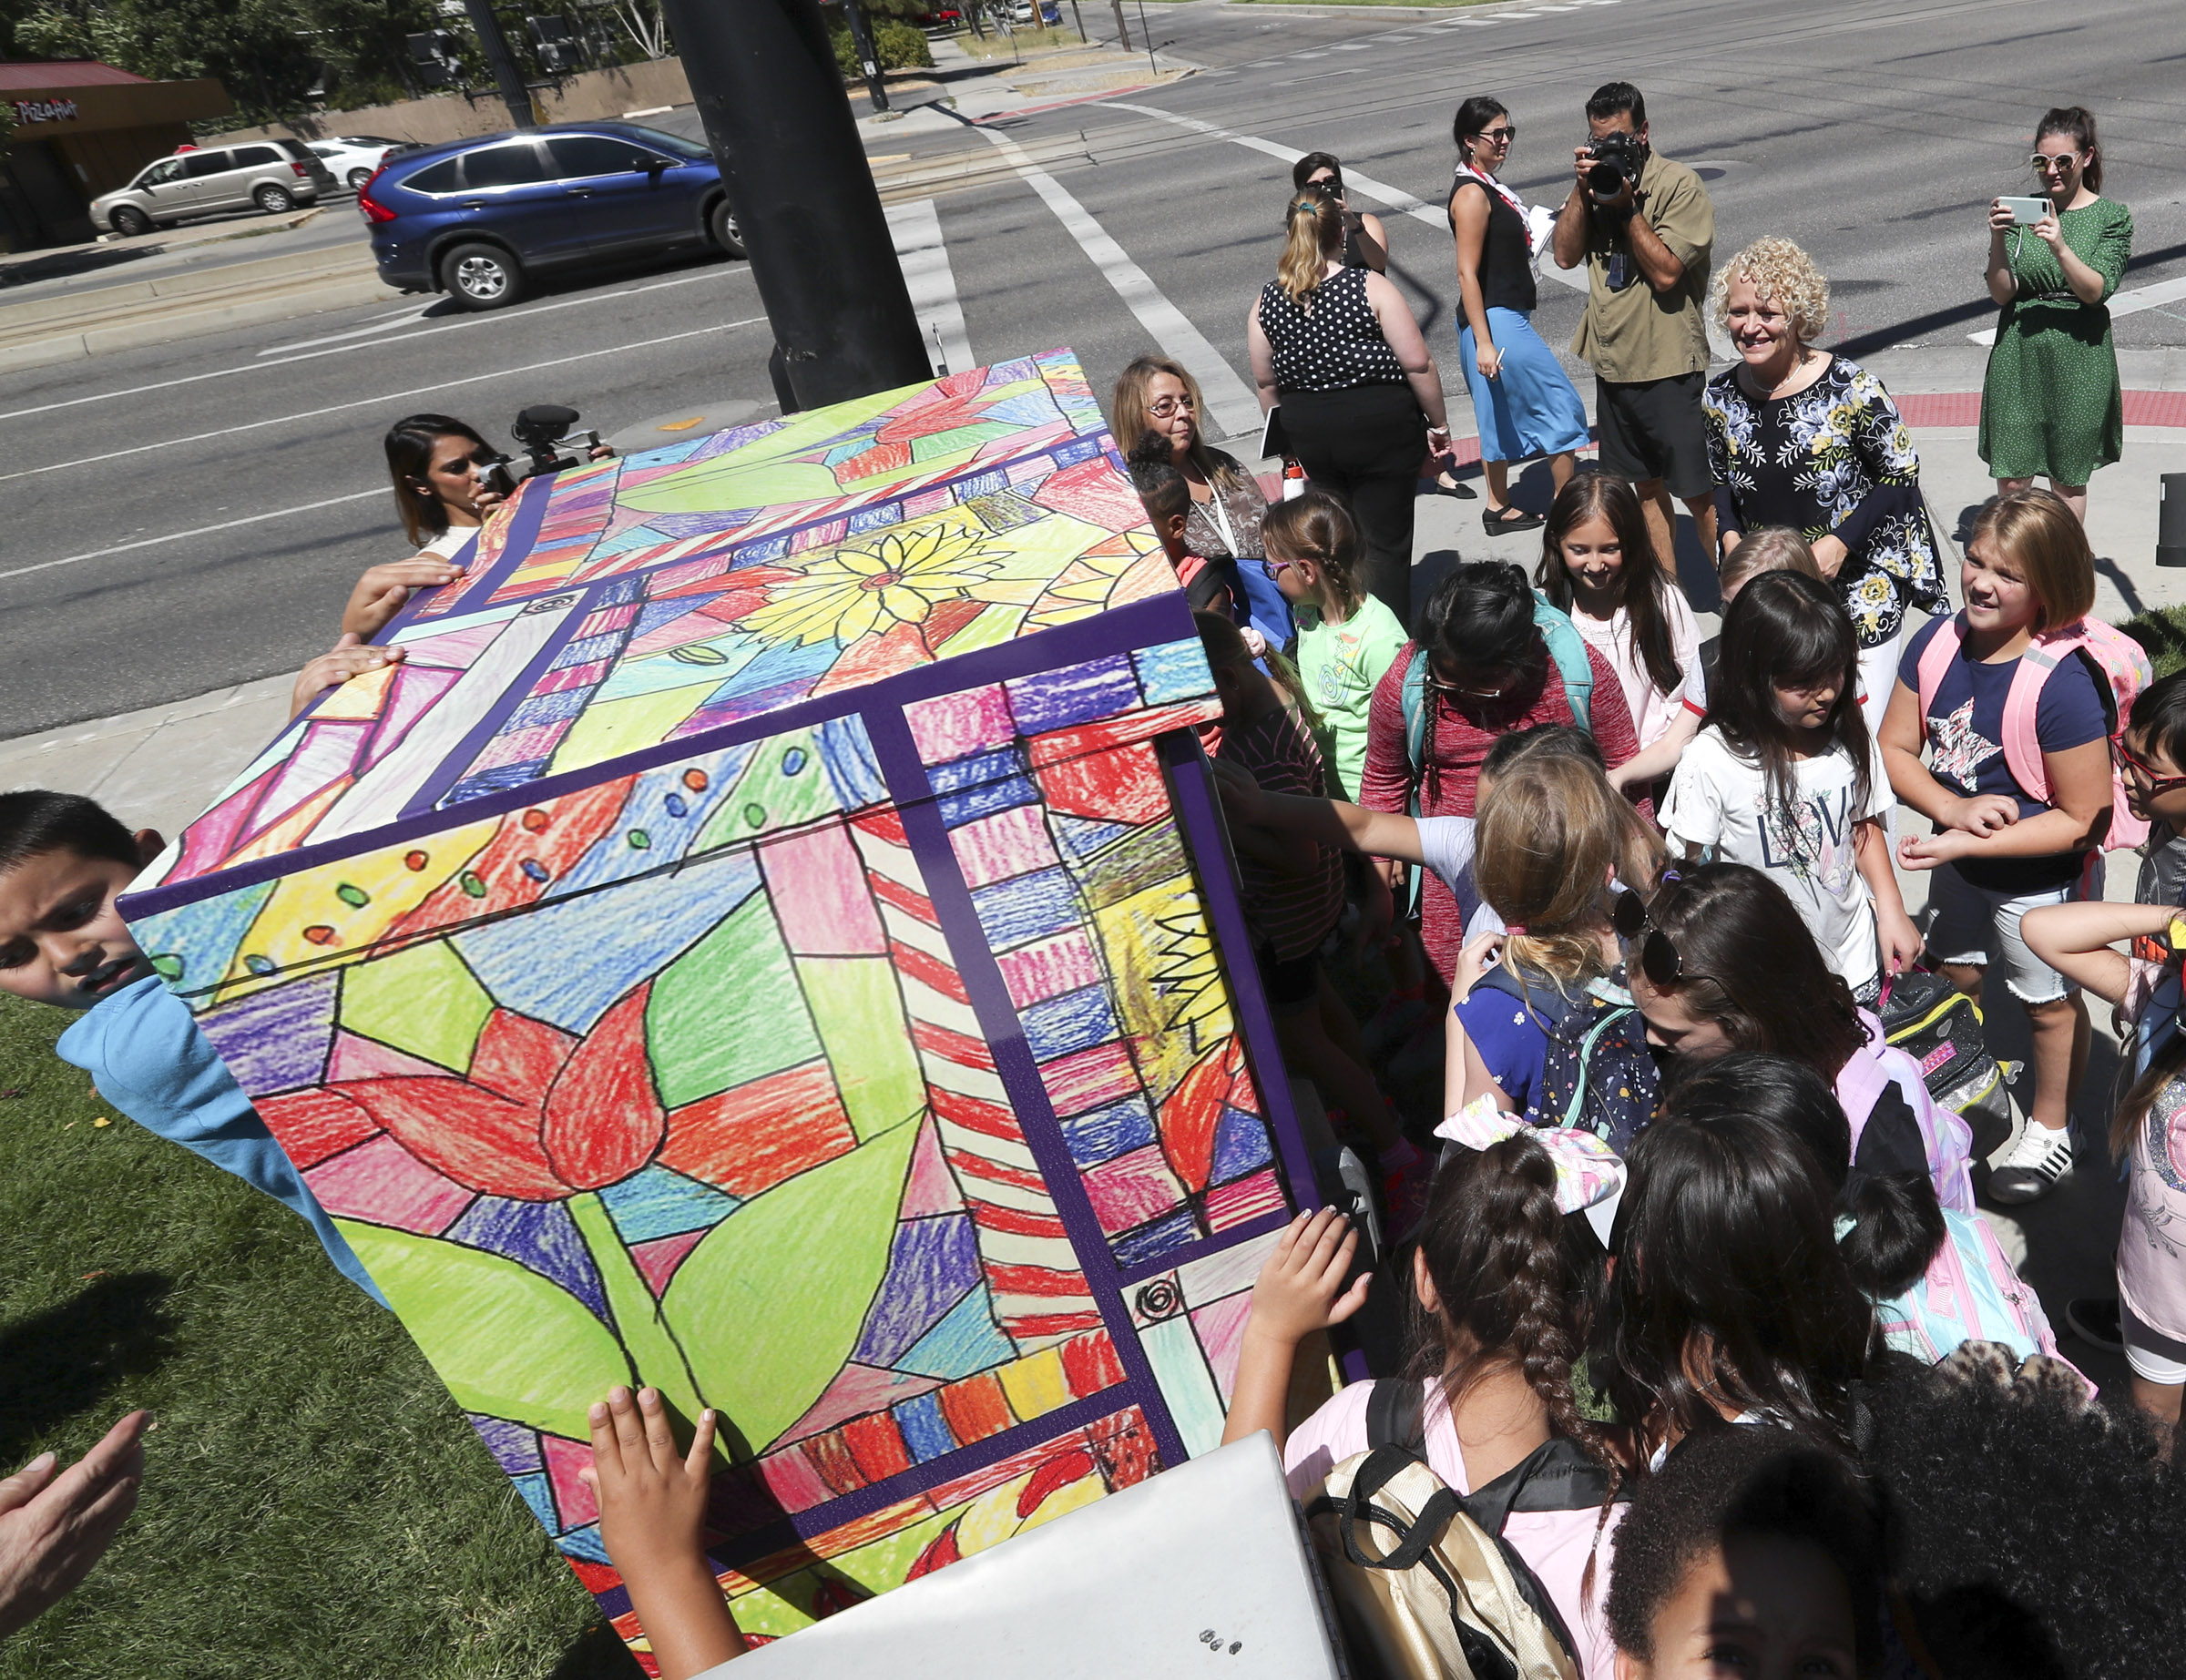 Salt Lake City Mayor Jackie Biskupski and Bennion Elementary School students check out a utility box covered with the students' art after it was unveiled in Salt Lake City on Tuesday, Aug. 20, 2019. The ColorSLC project aims transform city utility boxes, like the one across the street from the school at 429 S. 800 East, into public art. Through the ColorSLC program, 28 utility boxes have been wrapped with more than 1,100 of pieces of original art created by students at each of the 28 elementary schools in the Salt Lake City School District. It is the city's largest public art installation.